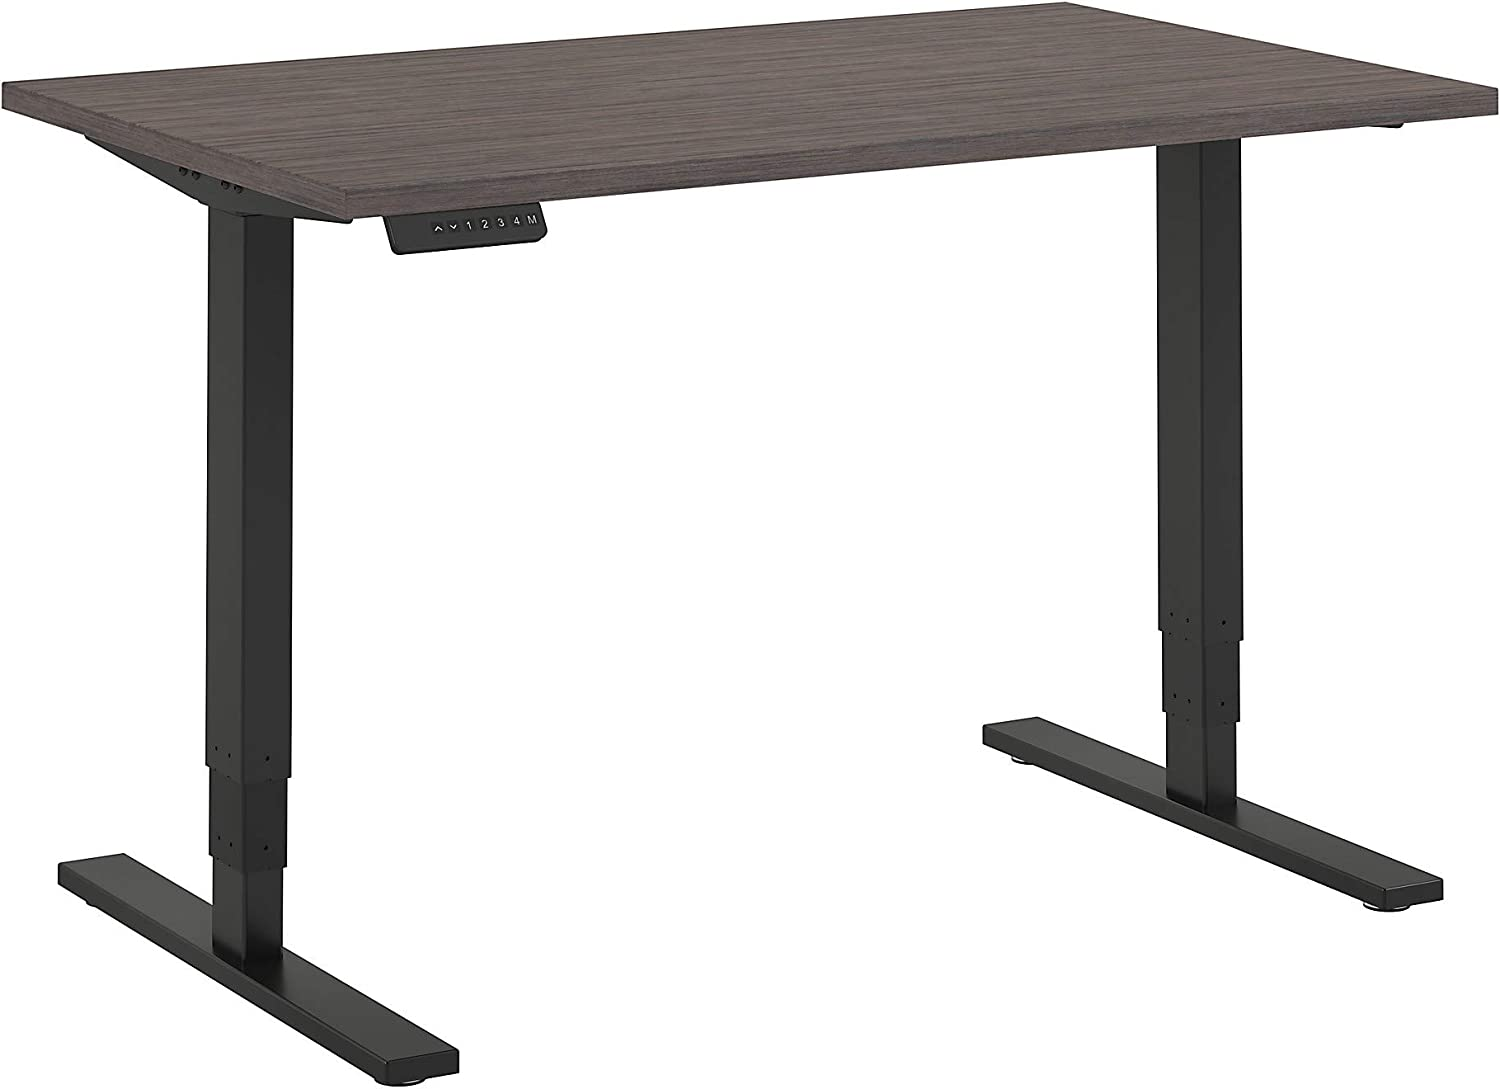 Move 80 Series by Bush Business Furniture 48W x 30D Height Adjustable Standing Desk in Cocoa with Black Base